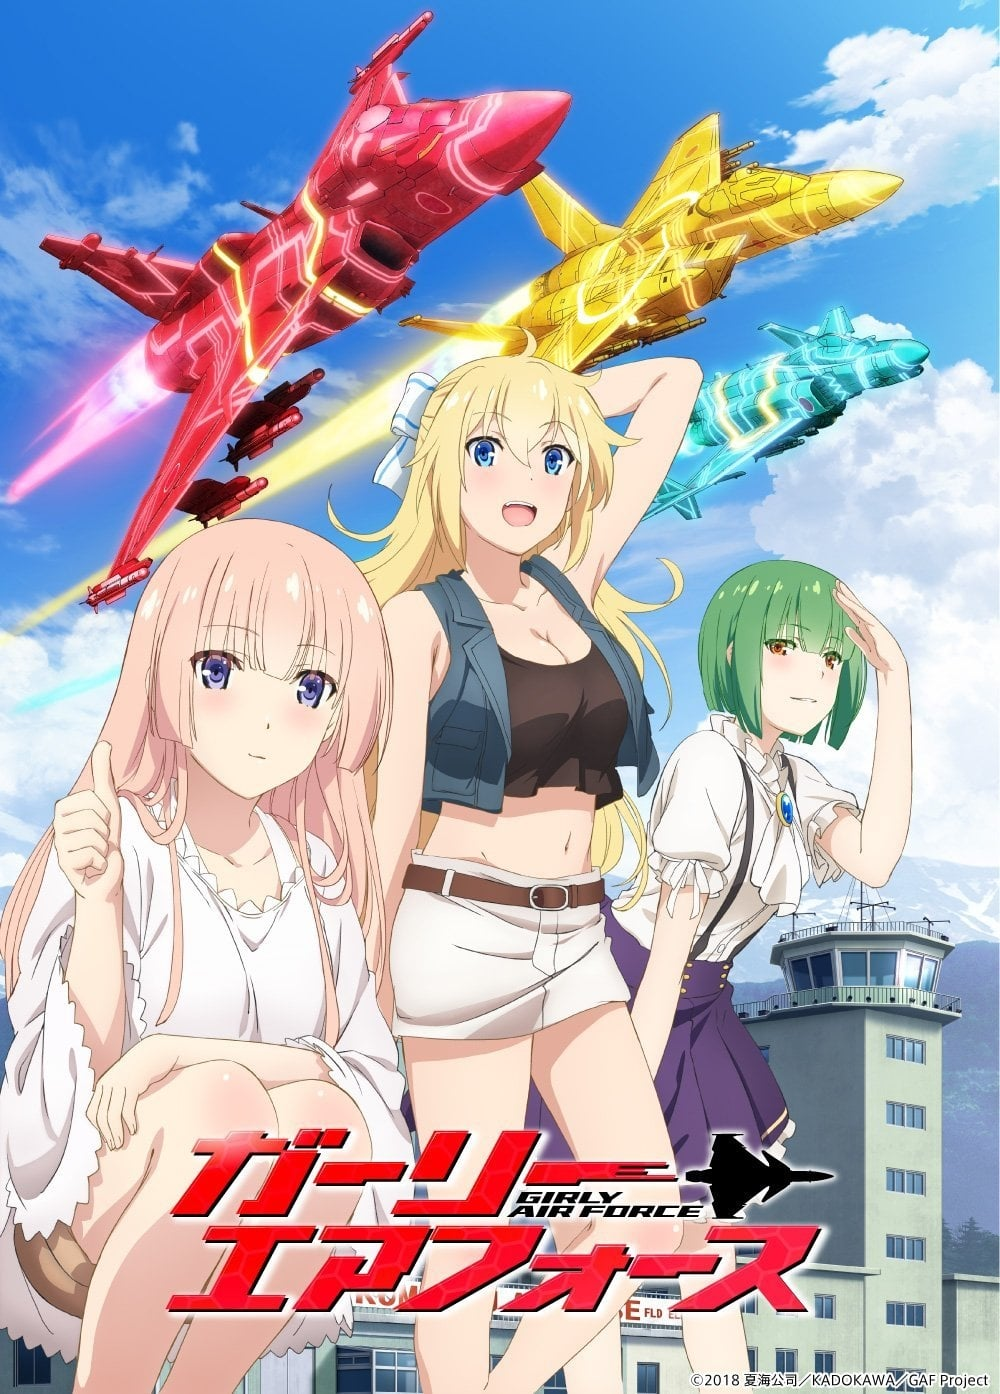 Girly Air Force Episodios Completos Descarga Sub Español